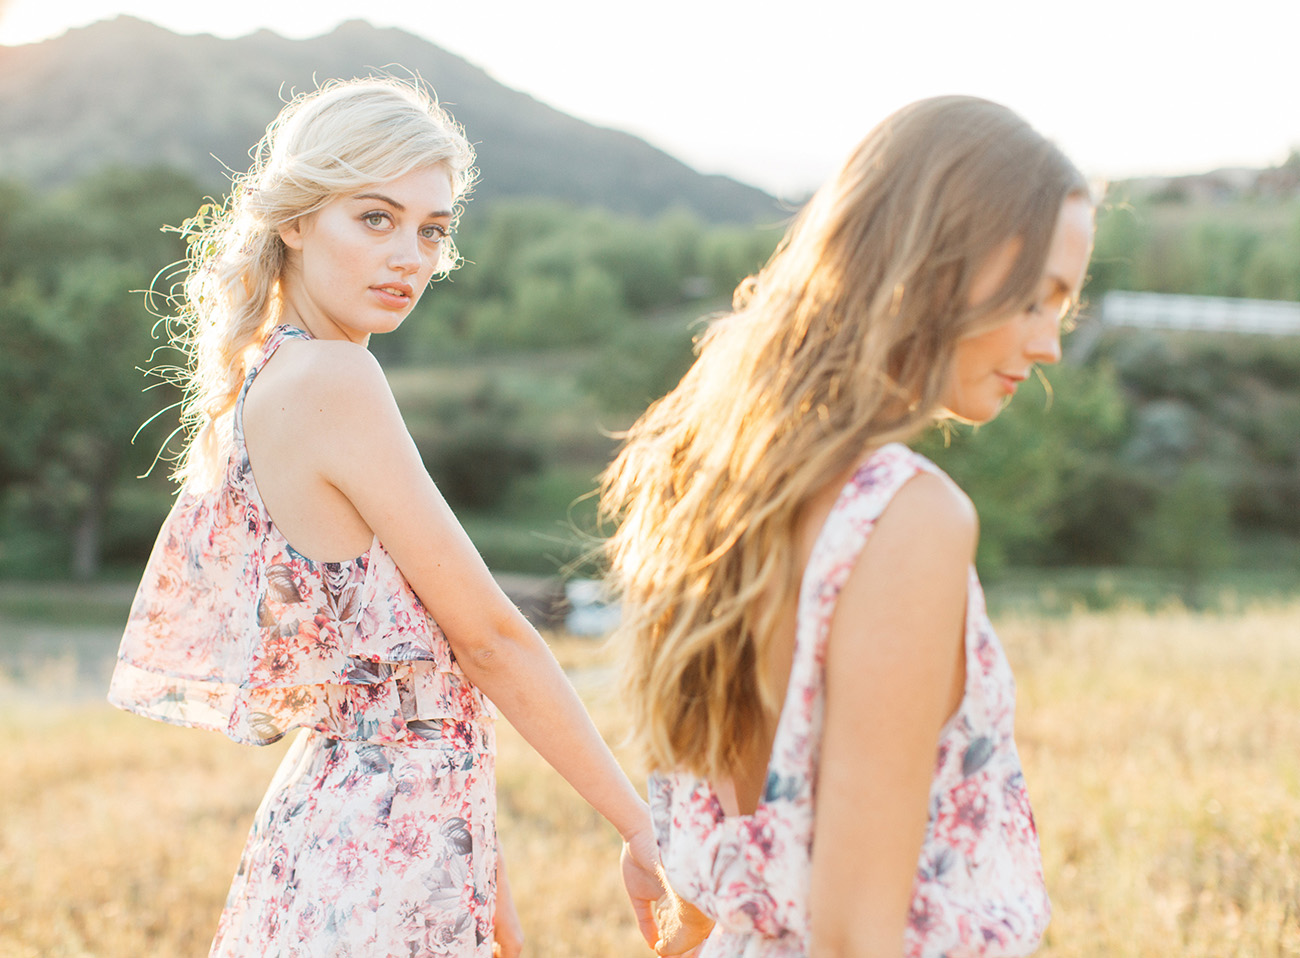 GWSxMumu bridesmaids dresses